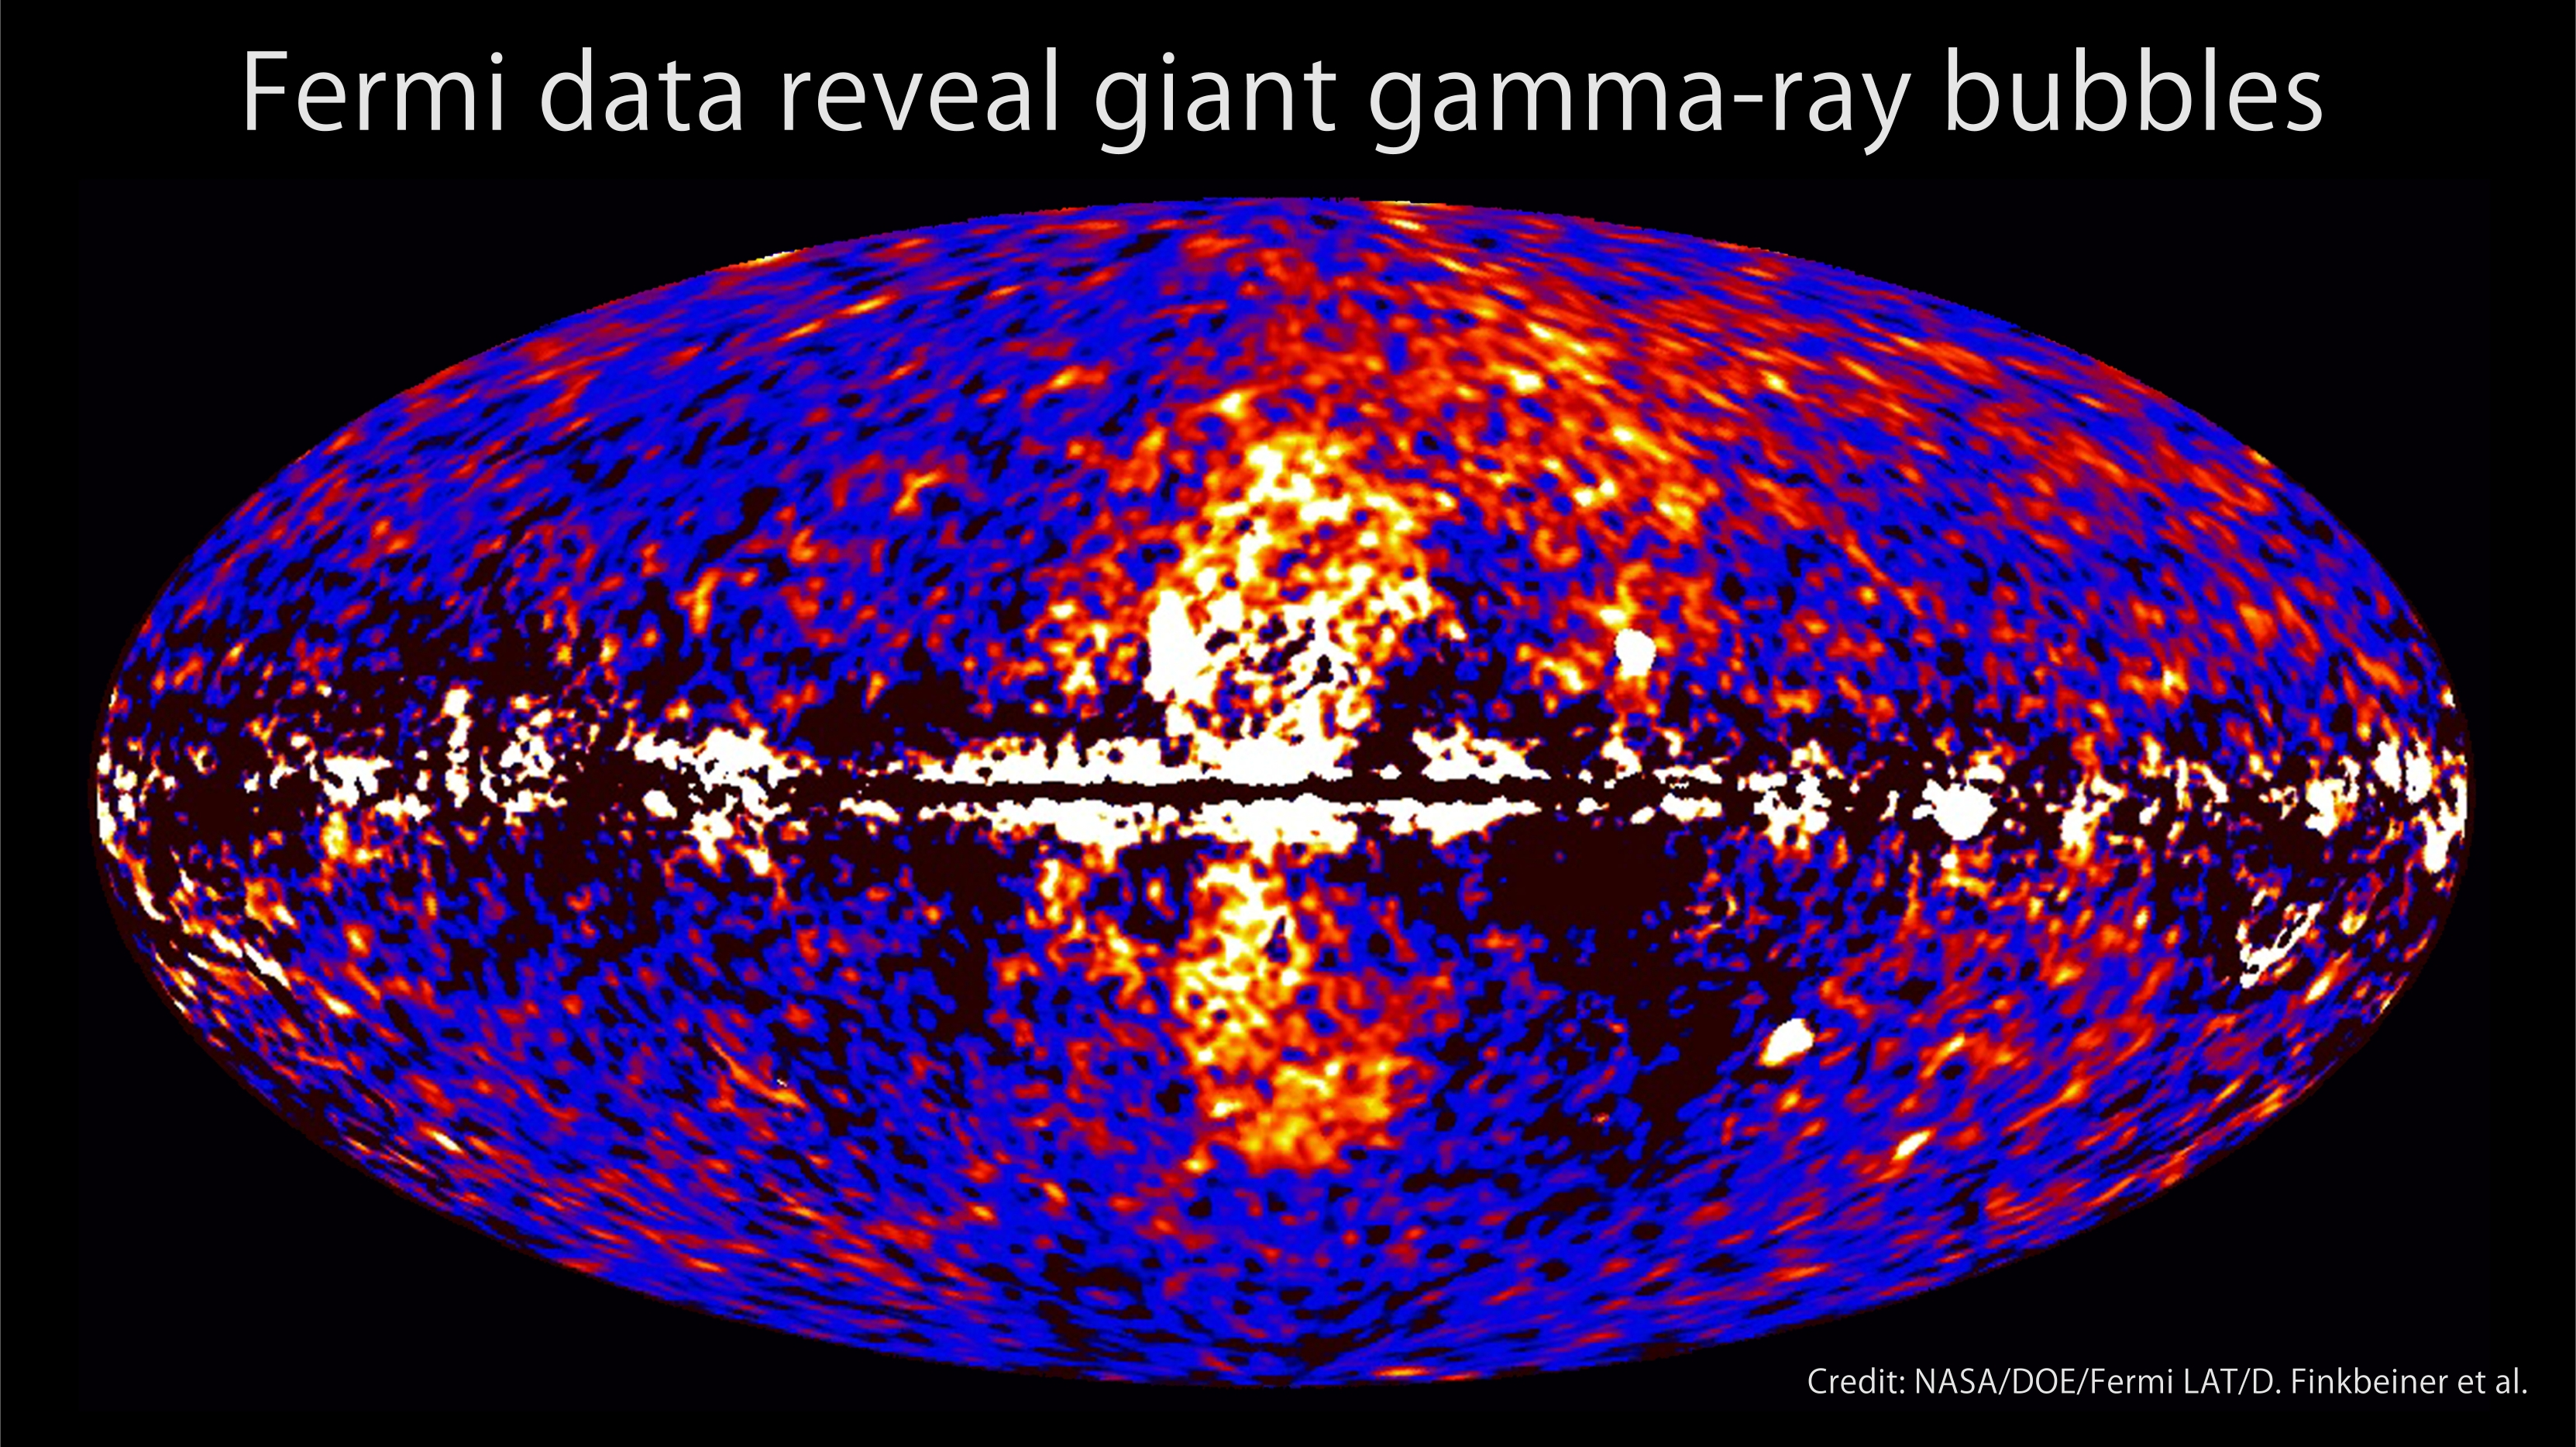 The leftover gamma-ray signal after subtracting a model for the expected diffuse emission, with additional data.